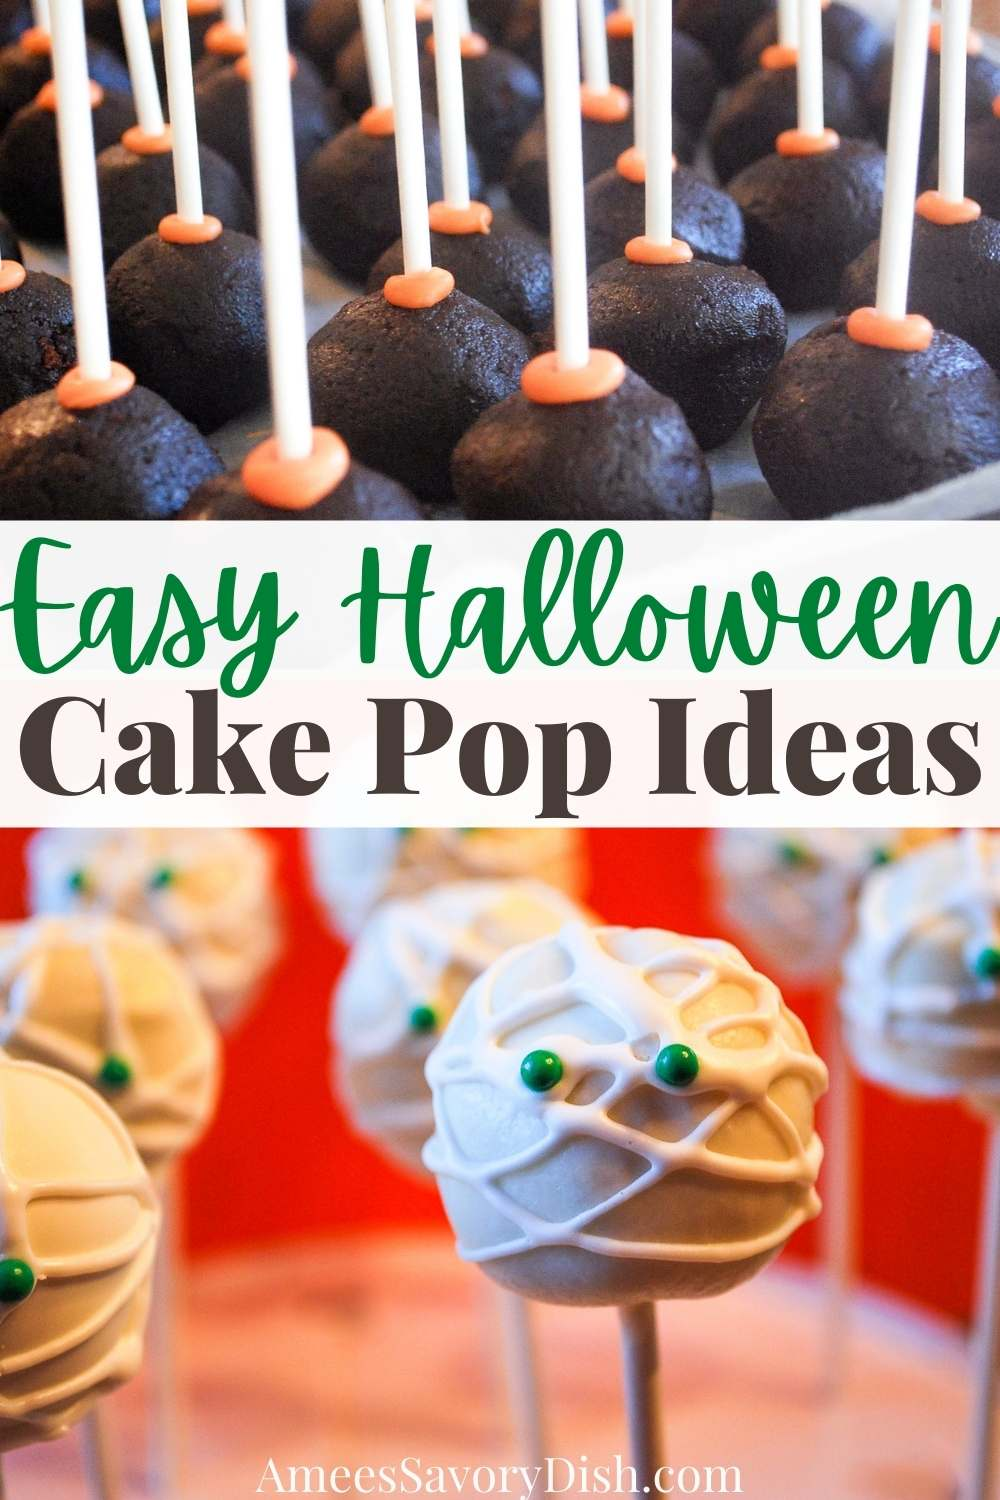 Fun Halloween cake pops to bring smiles to all your little goblins. Ideas on creating mummies, pumpkins or fun confetti designs for your next Halloween bash. via @Ameessavorydish